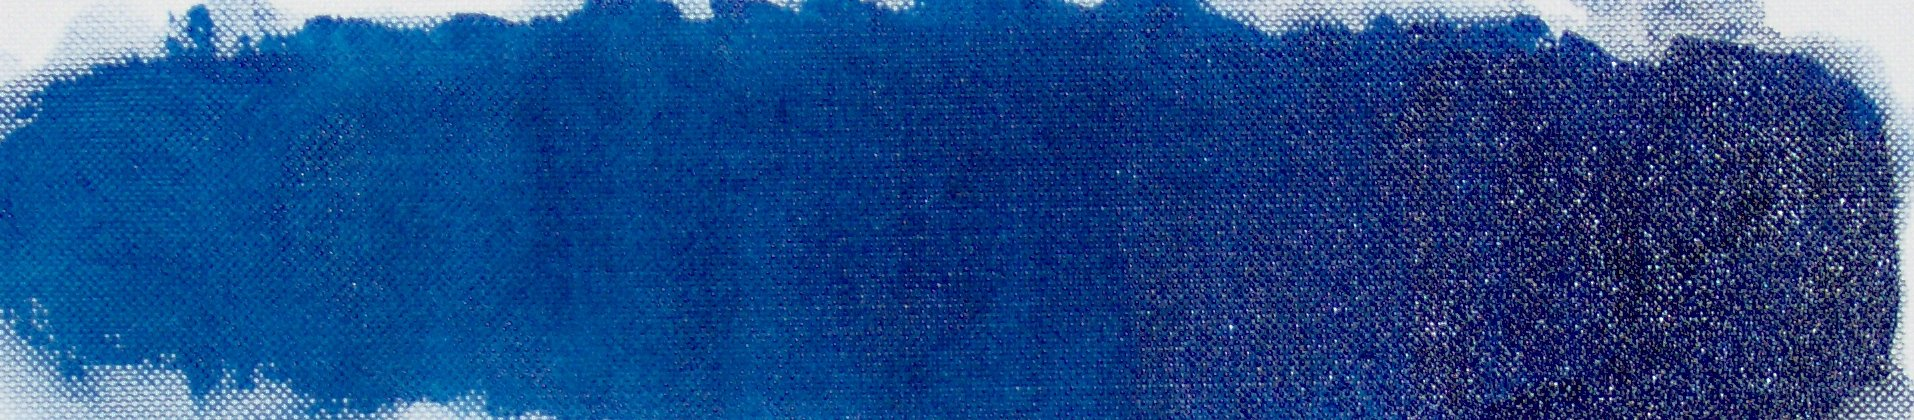 Prussian Blue The Color Of Great Waves And Starry Nights